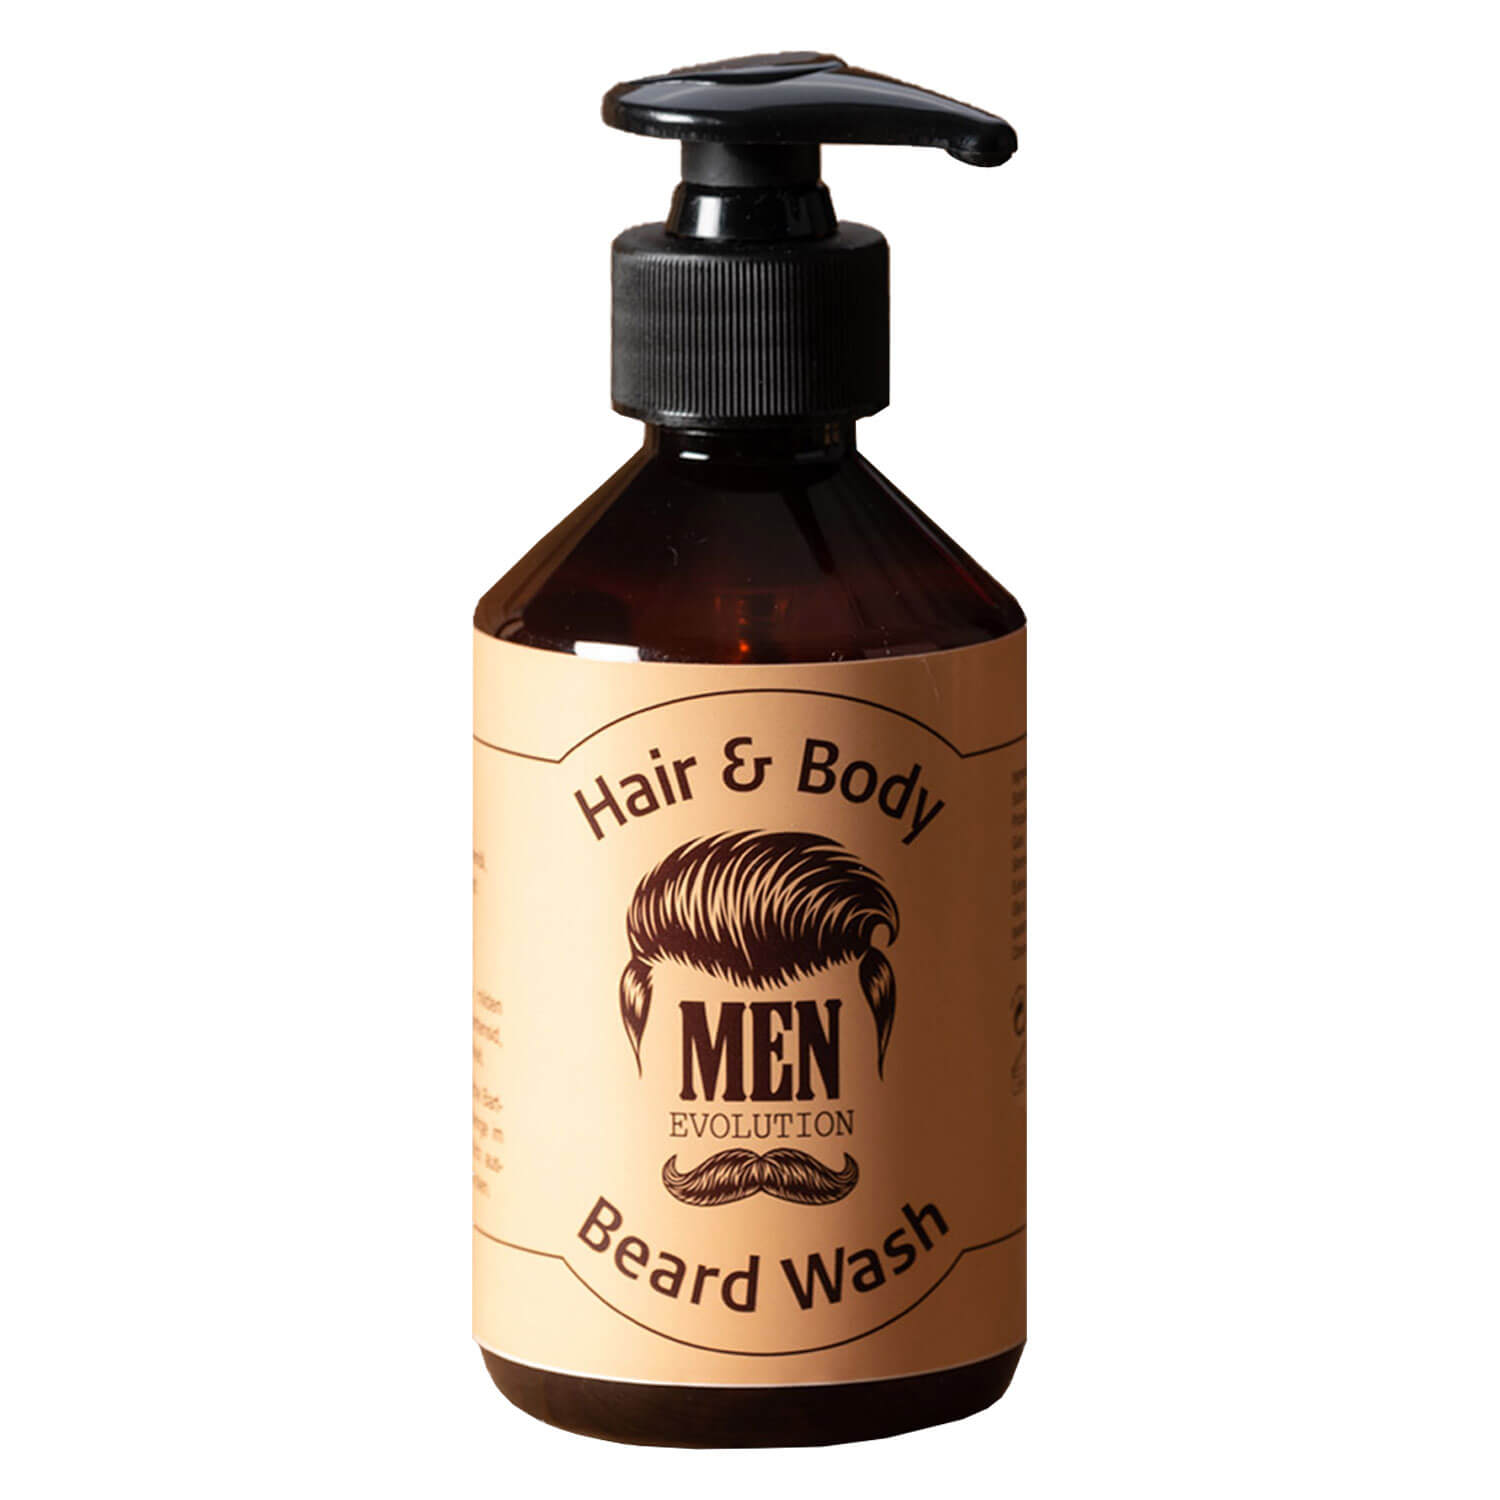 MEN Evolution - Hair & Body Beard Wash